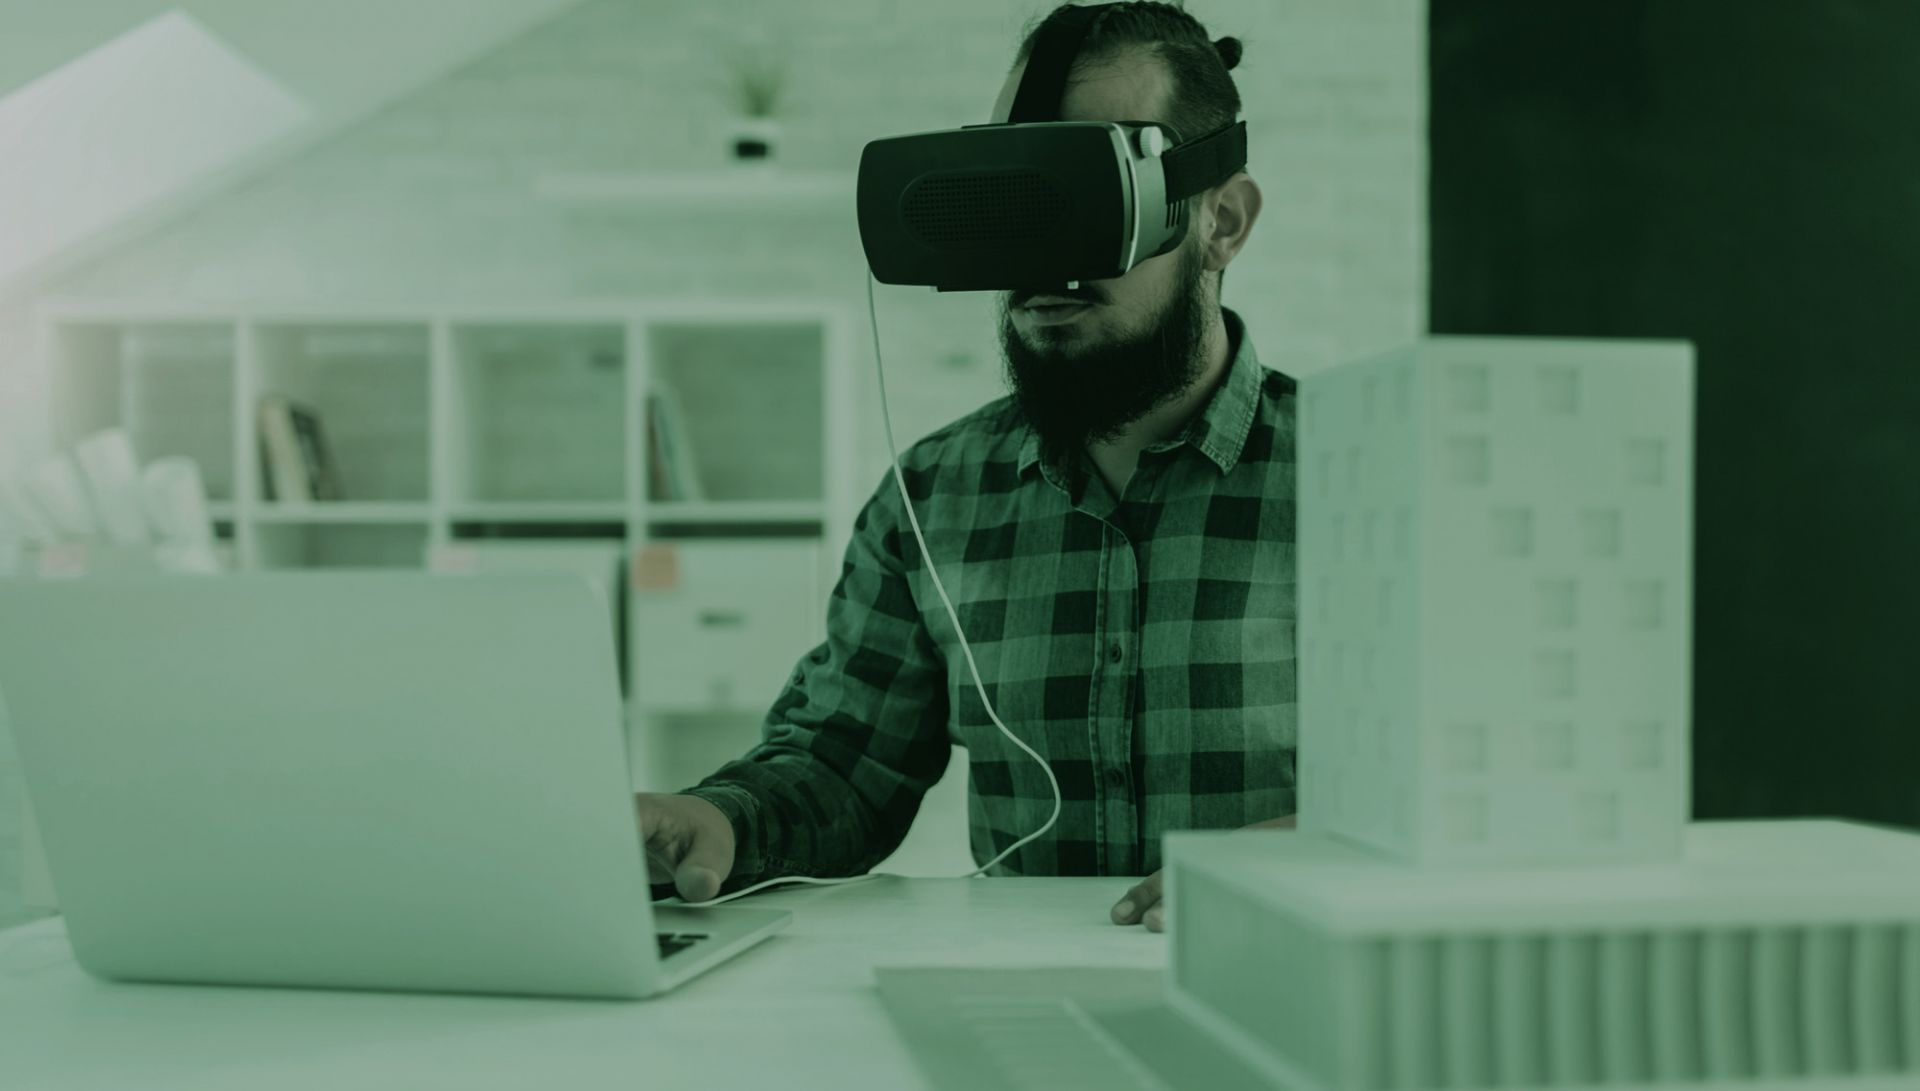 high tech industry image of engineer programming with VR goggles